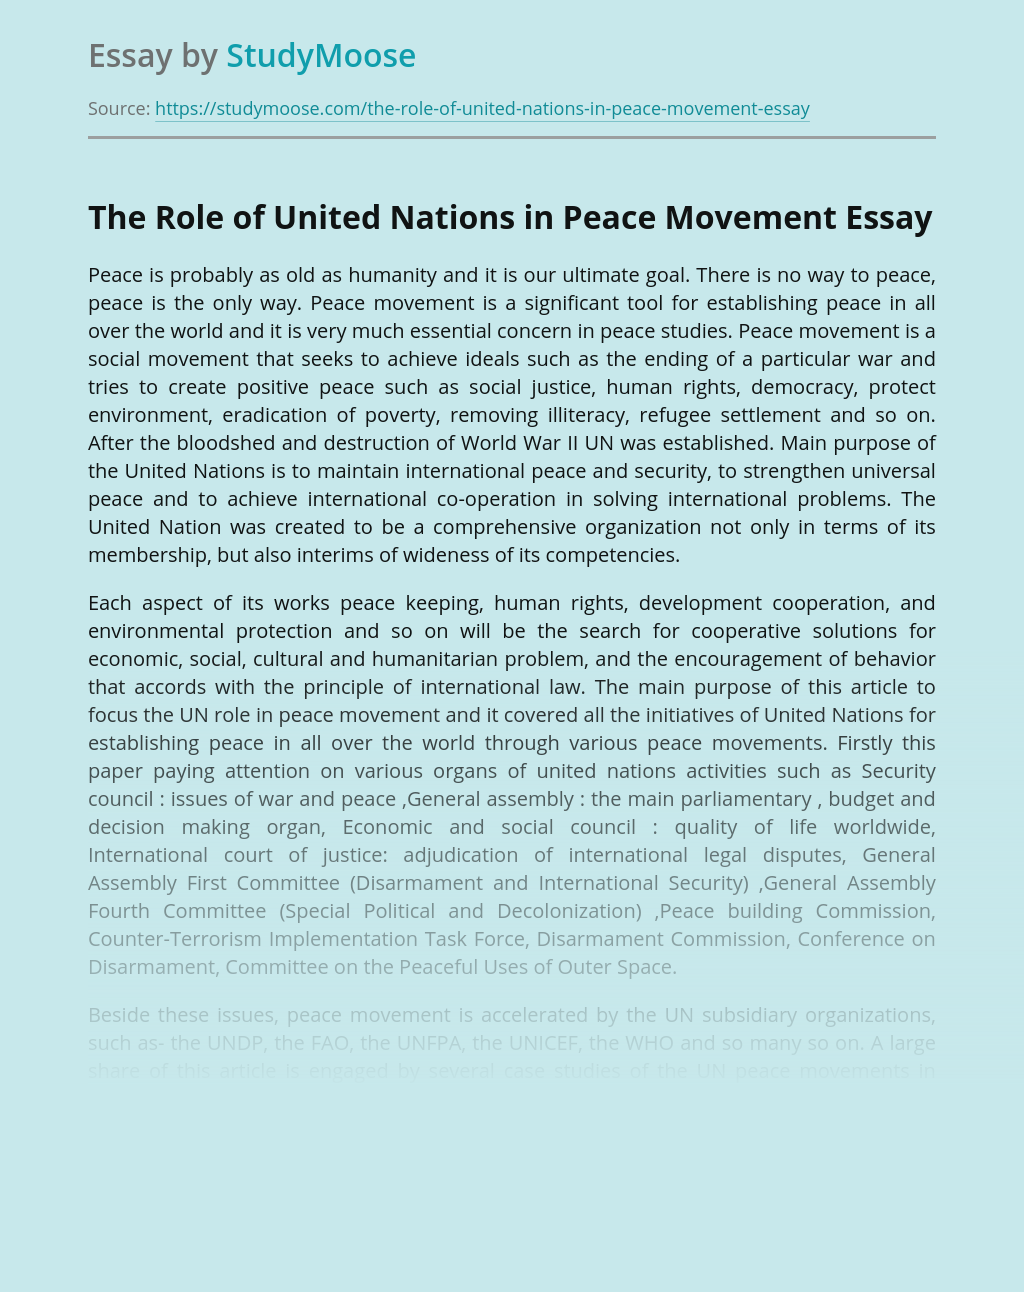 The Role of United Nations in Peace Movement